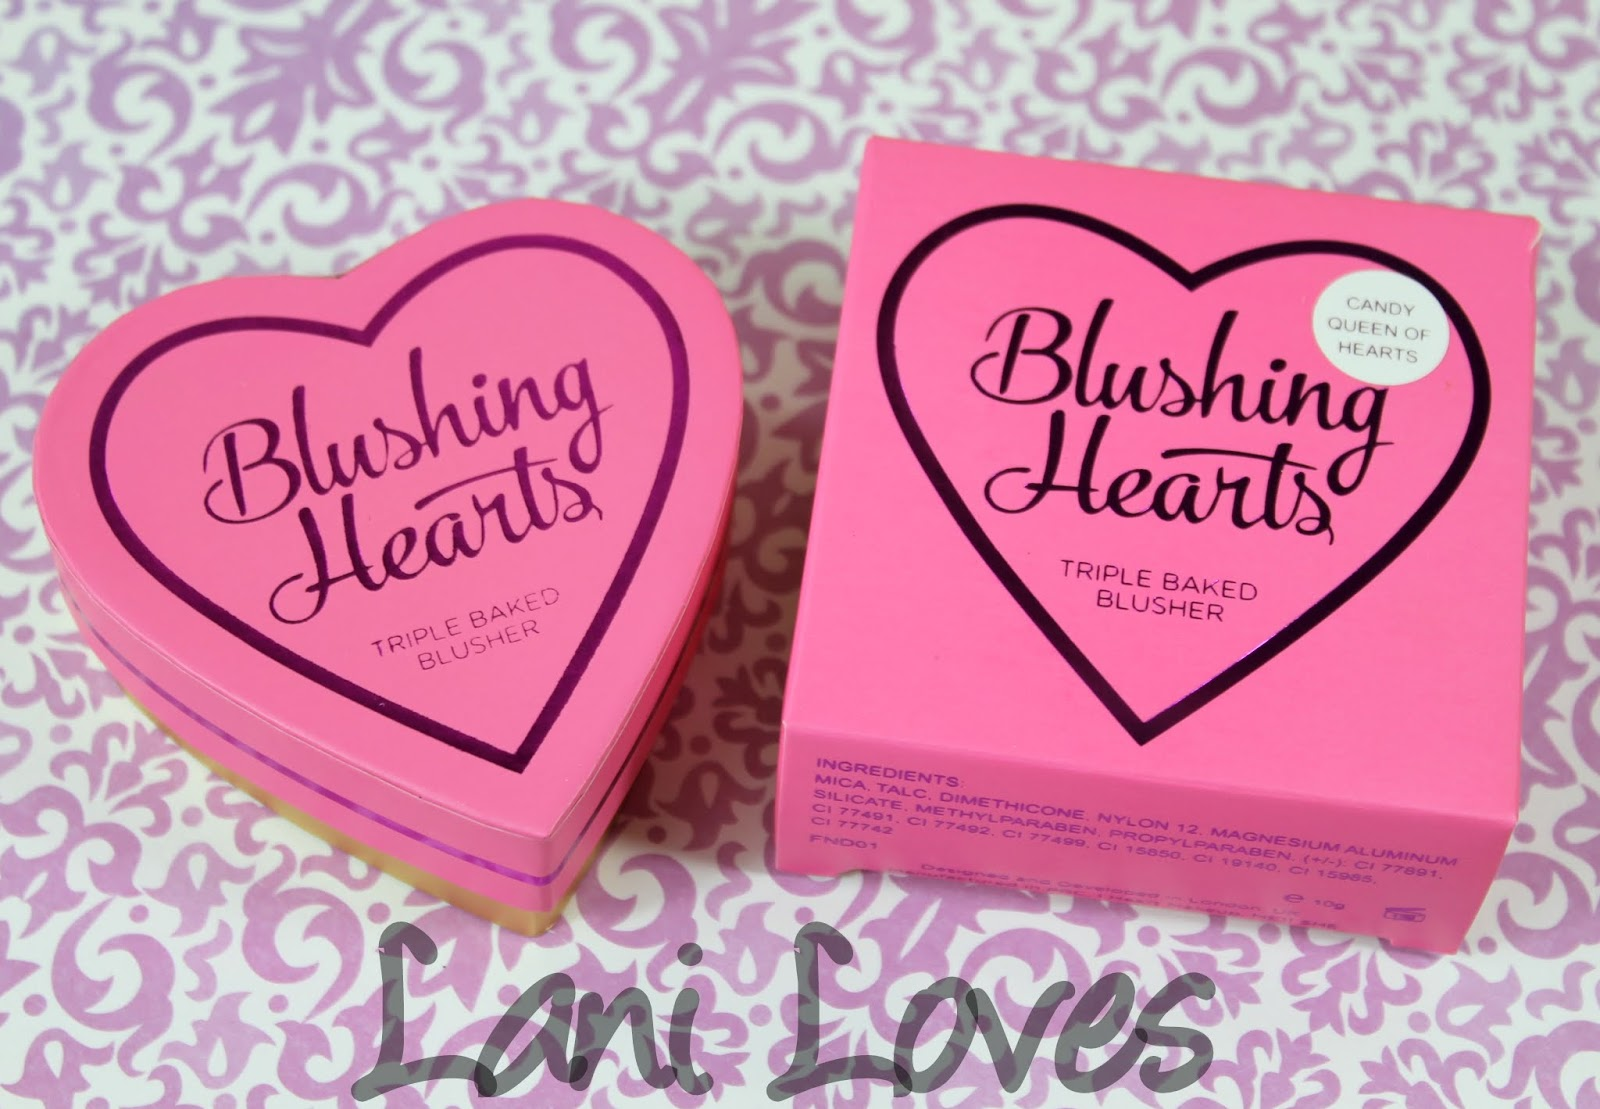 Makeup Revolution: I ♡ Makeup Blushing Hearts - Candy Queen of Hearts Triple Baked Blushers Swatches & Review